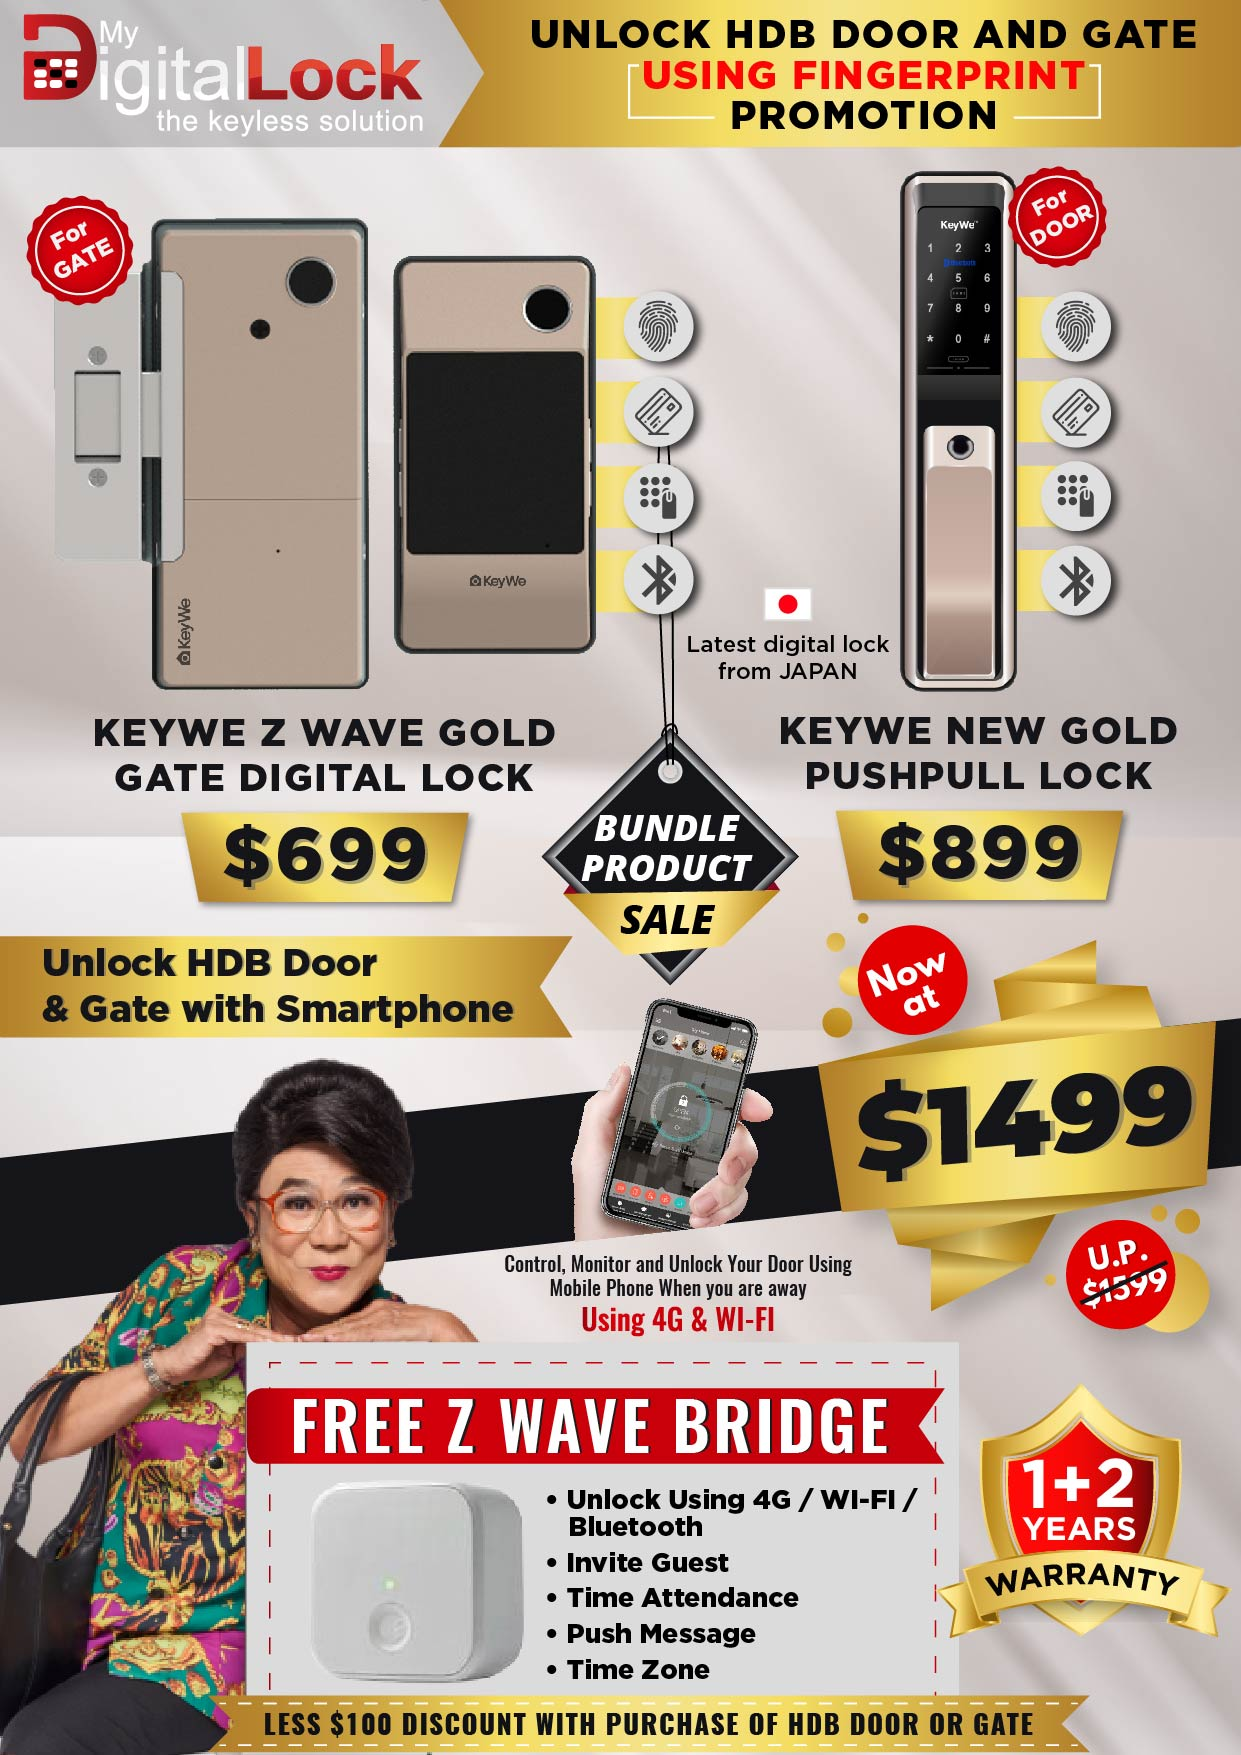 KEYWE-Z-Wave-Gate-and-Gold-Push-Pull-Digital-Lock-Promotion-11